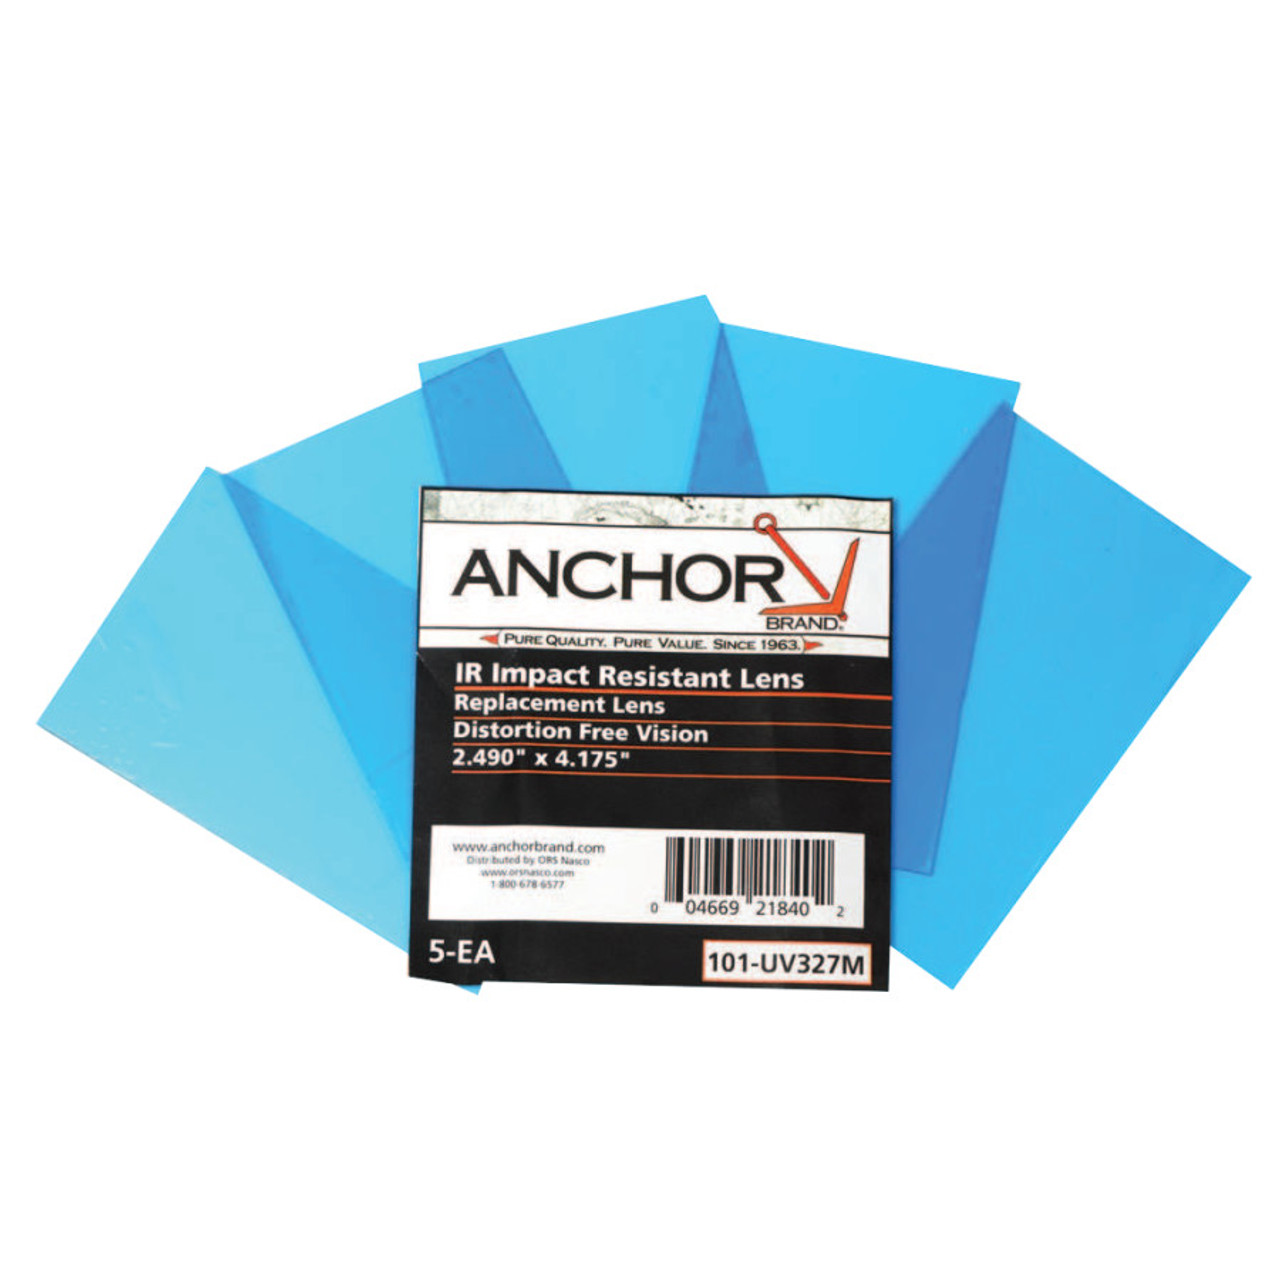 ORS Anchor Brand Inside 5-1/4 In x 4-1/2 In 100% Polycarbonate Cover Lens  EDP: 101-UV327M